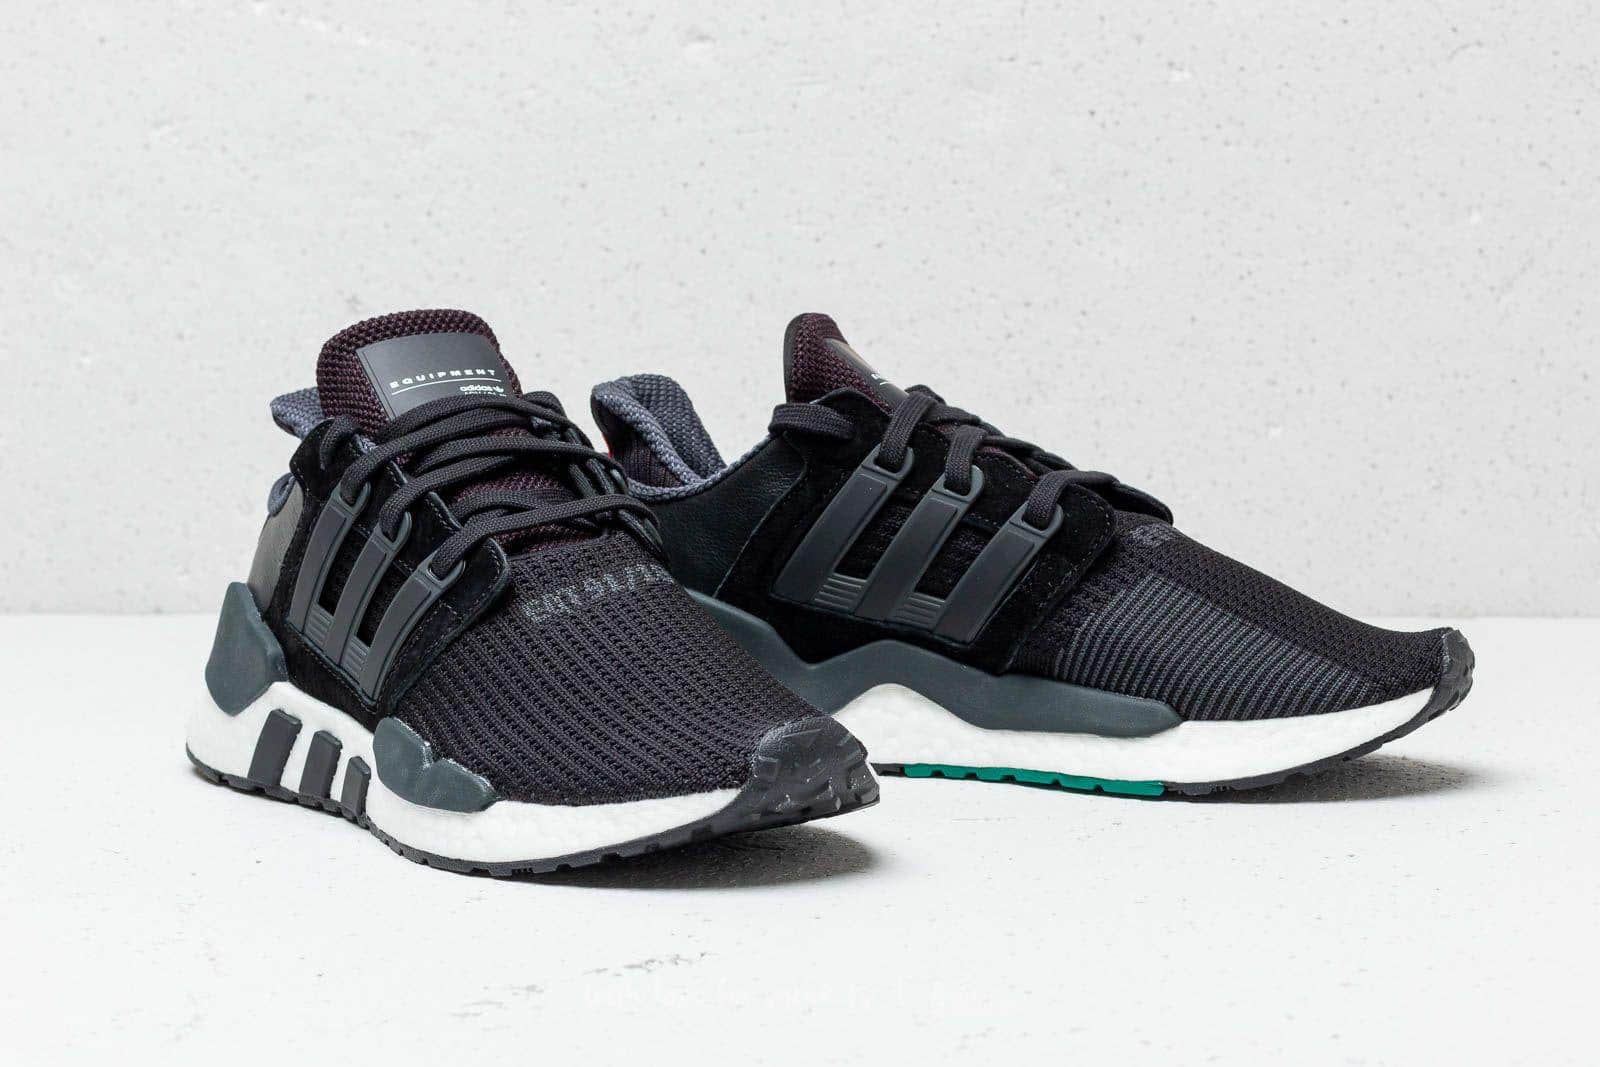 super popular 0d0fe 77263 Men's EQT SUPPORT 91/18 SHOES $90 - Slickdeals.net